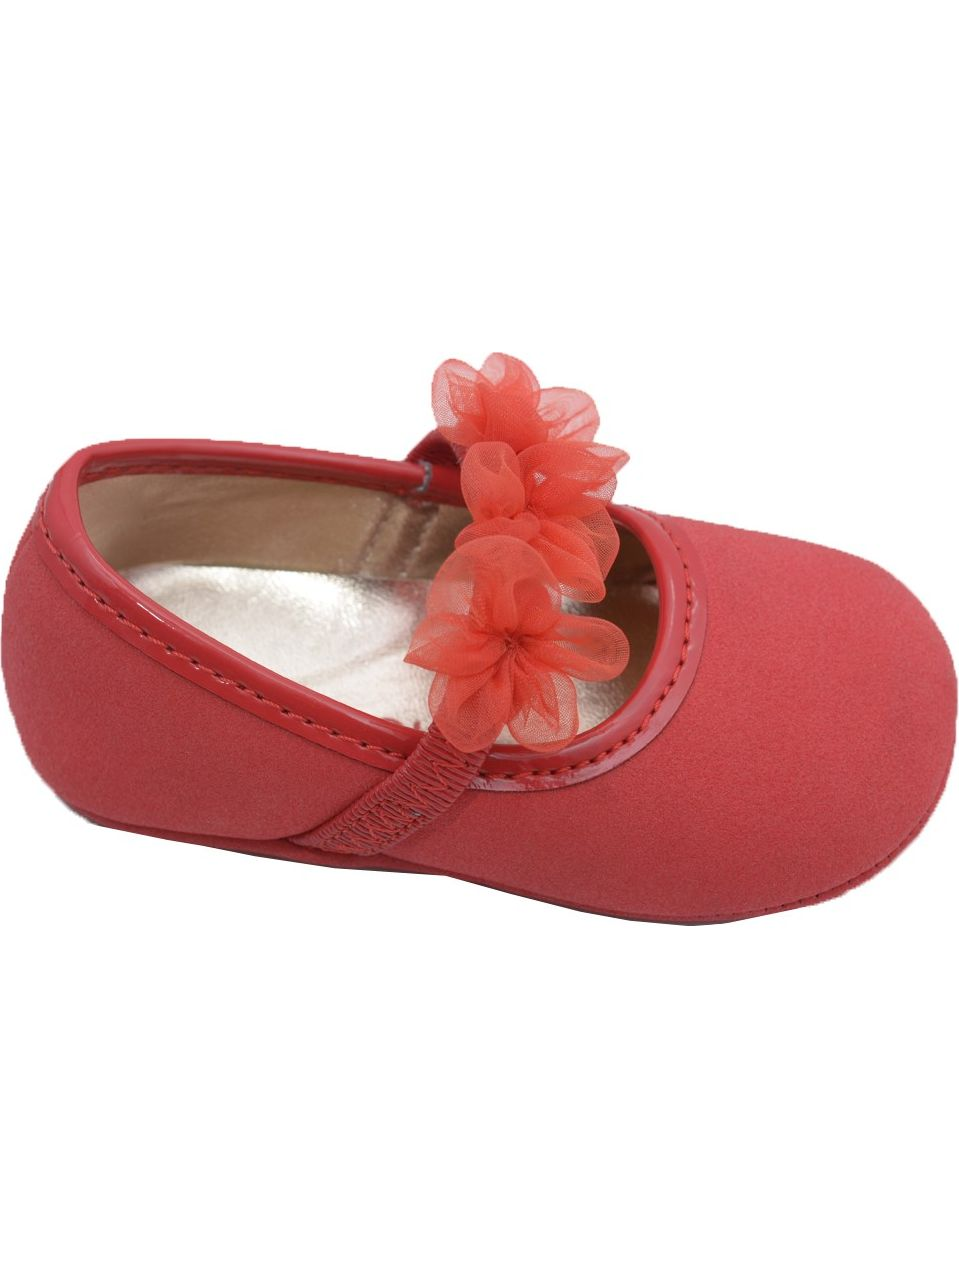 Girls Red Organza Flower Elastic Strap Crib Shoes 0-5 Baby